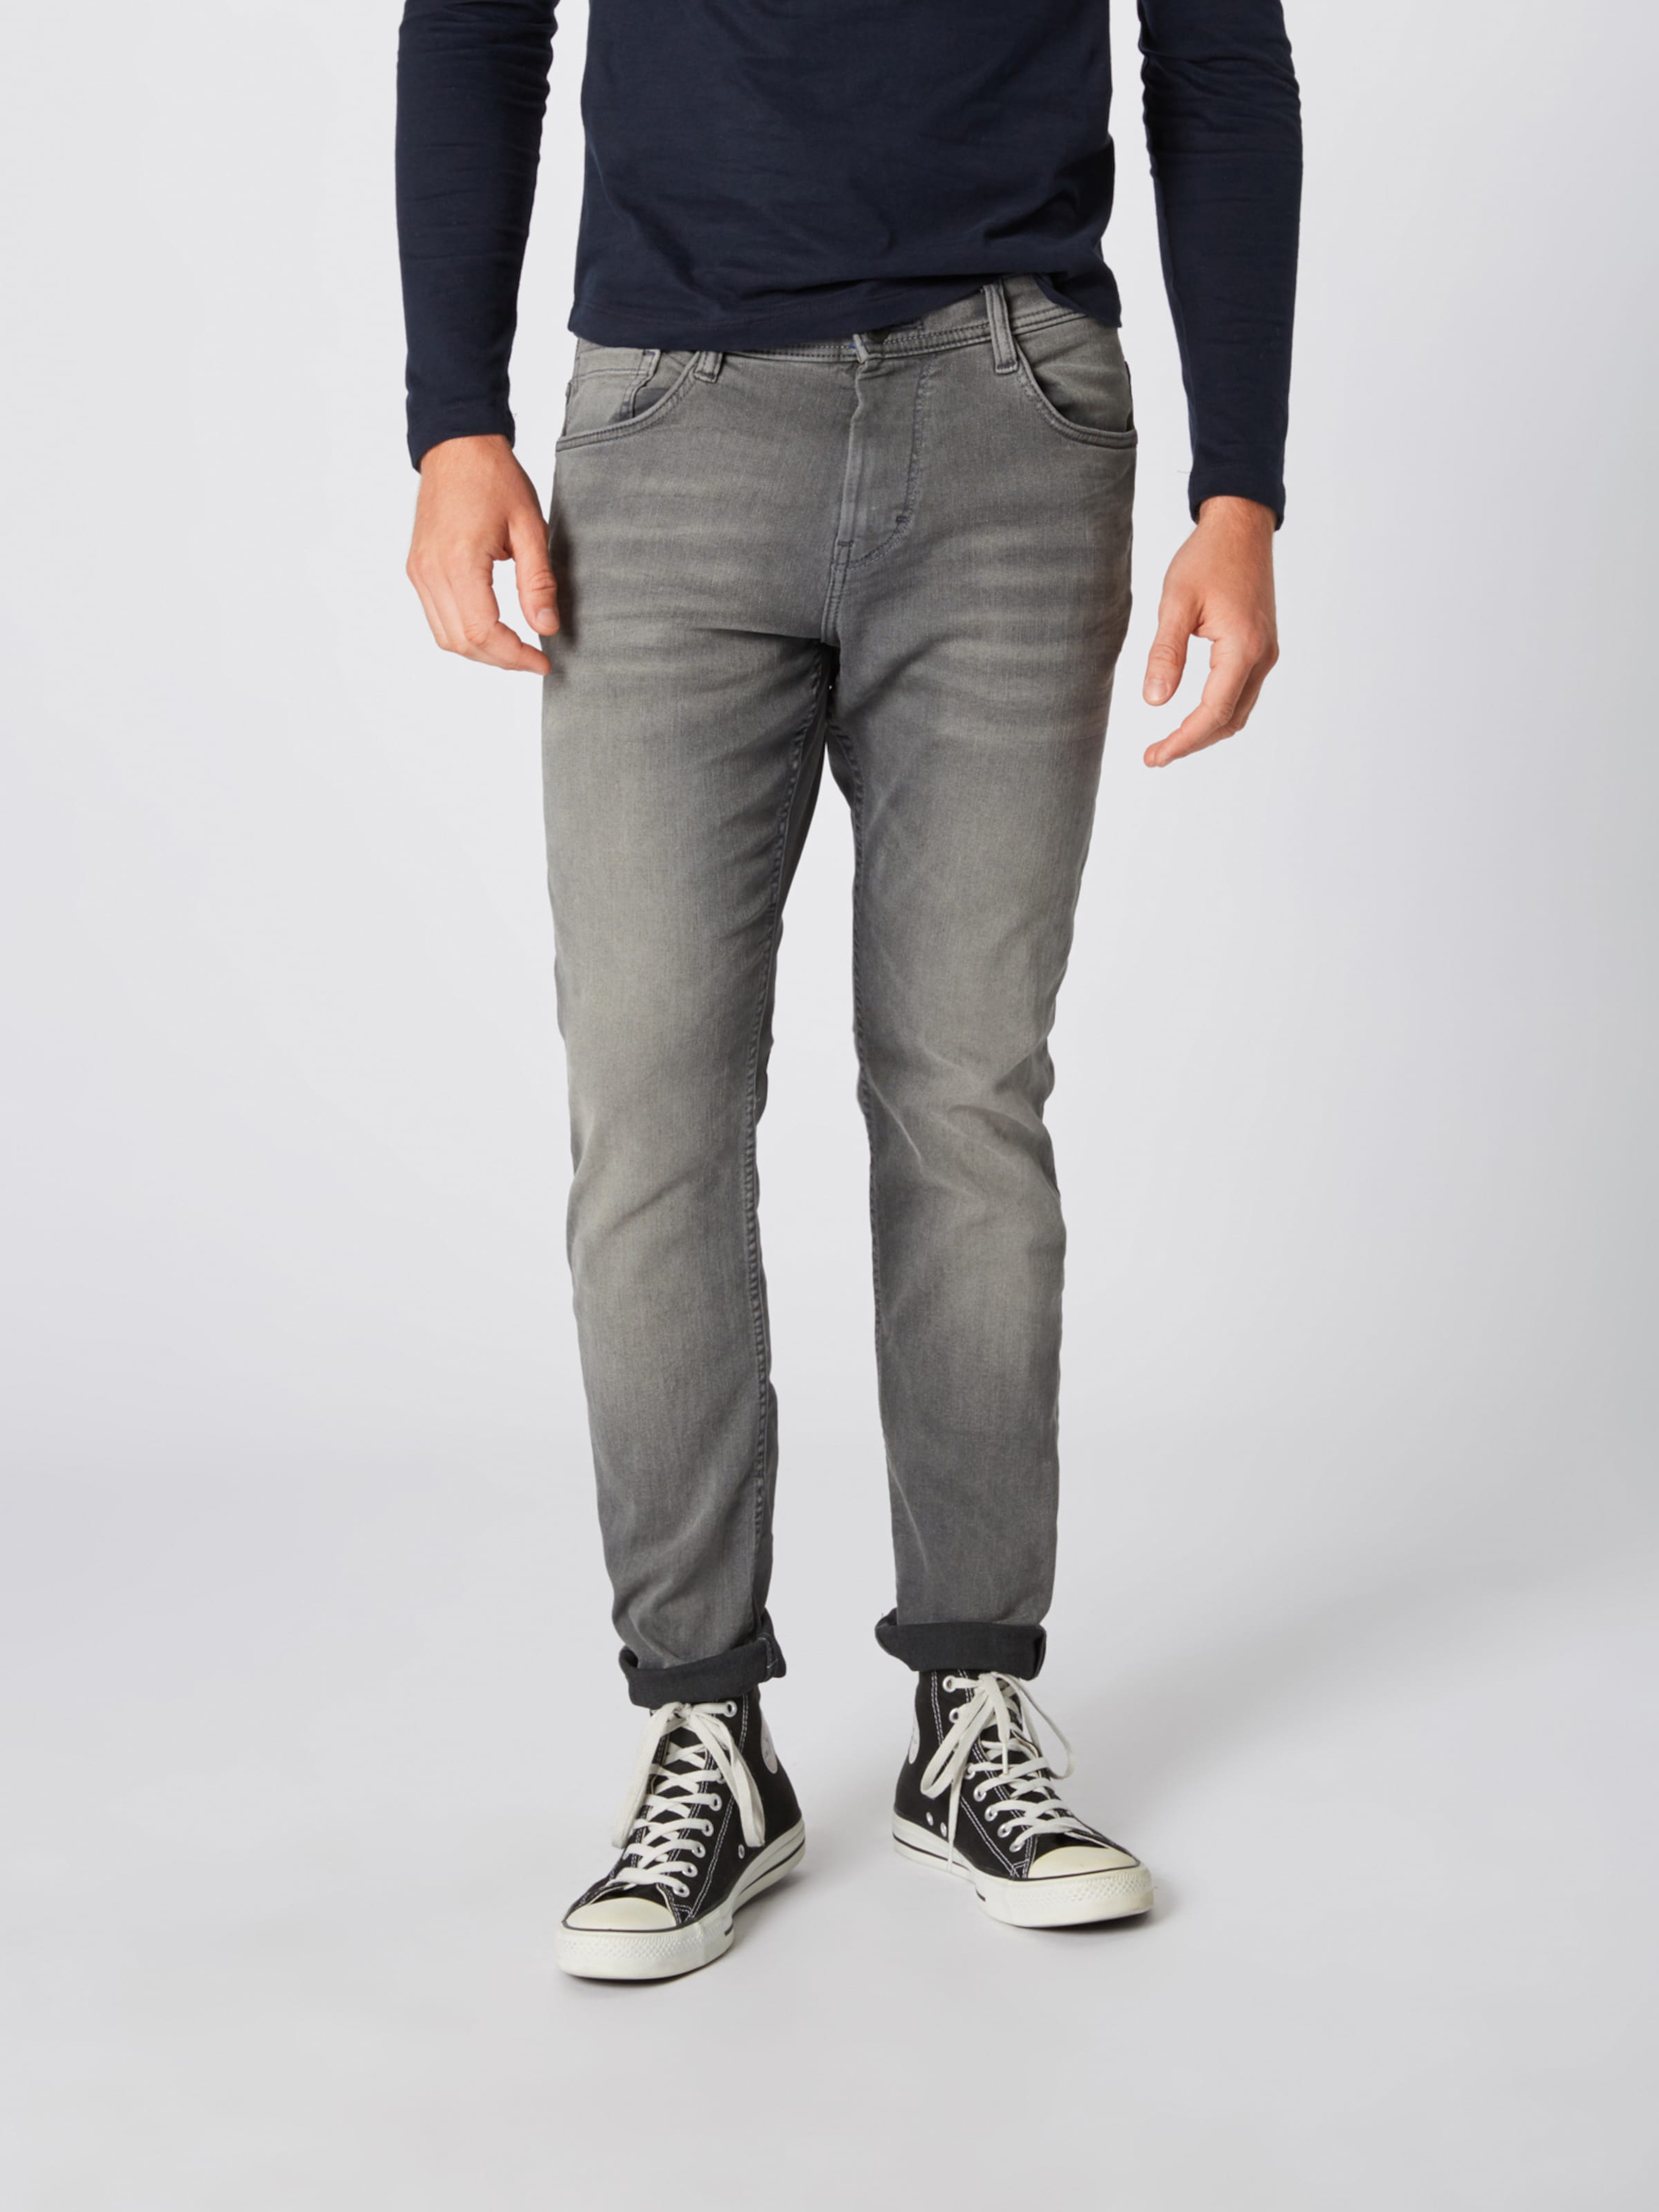 In Grey Jeans Tailor 'josh' Denim Tom nPkX80wO